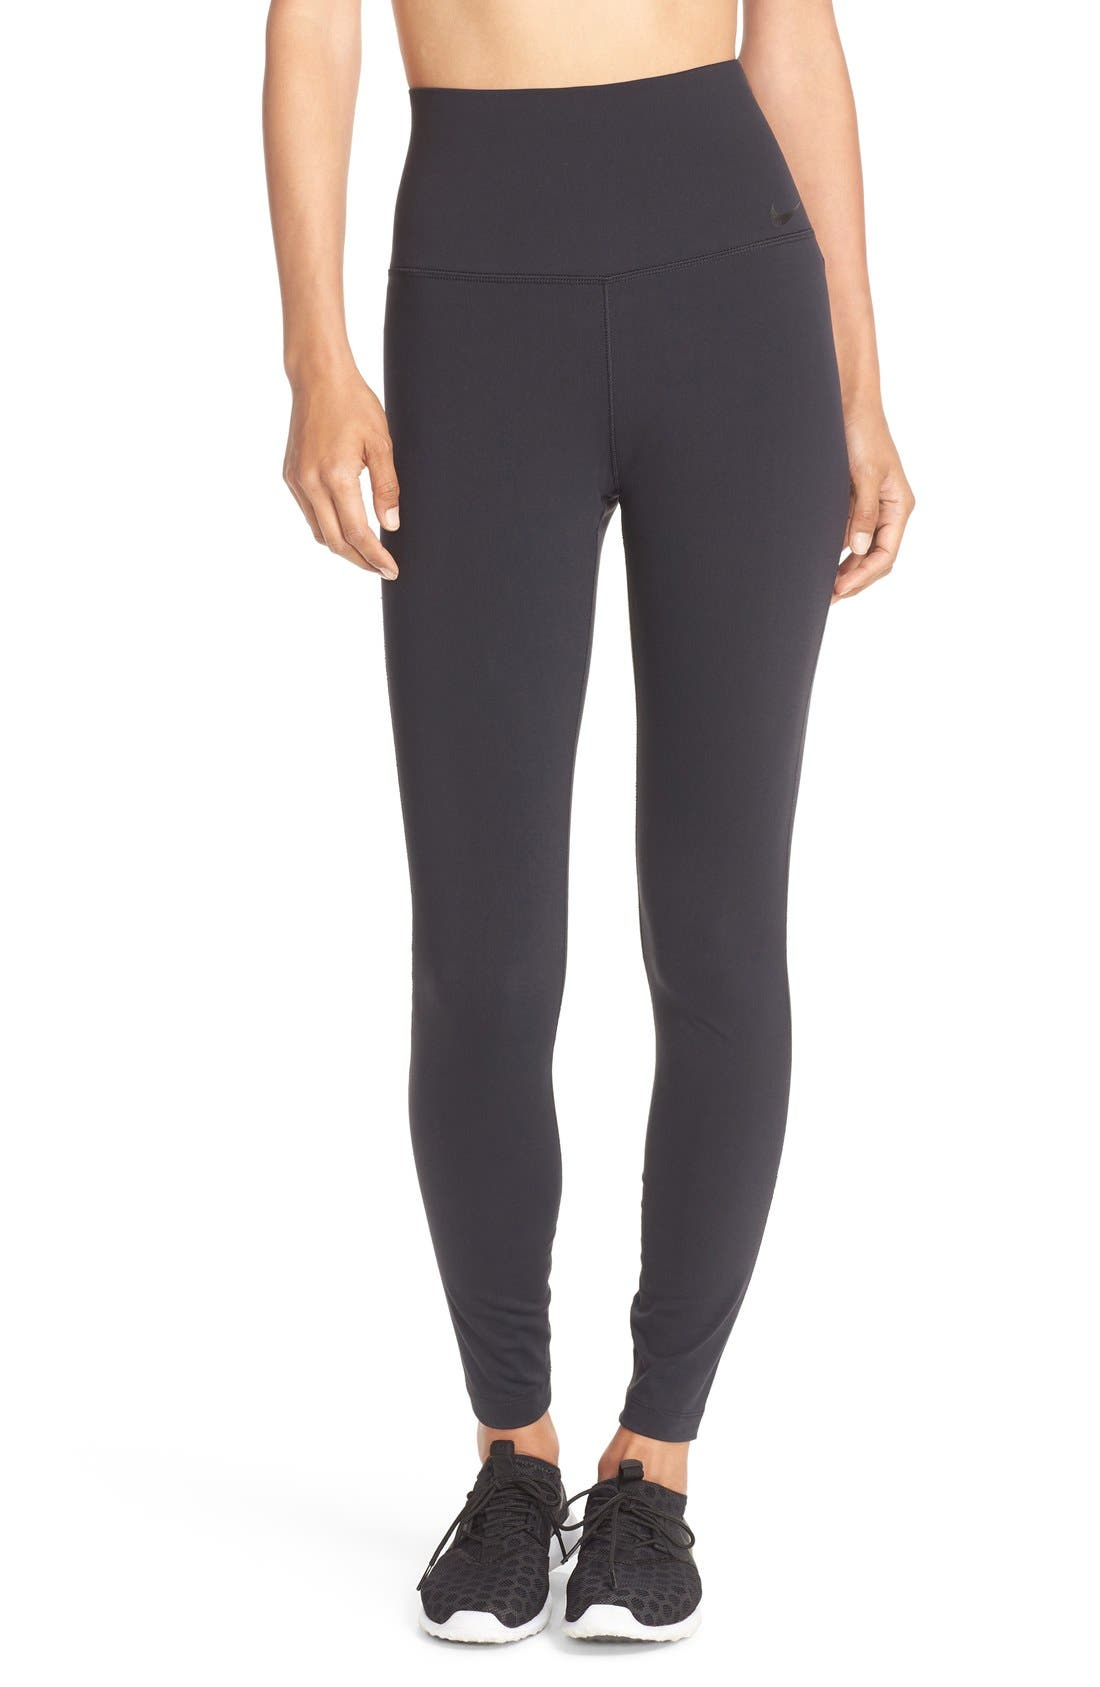 Main Image - Nike Power Legendary High Waist Tights